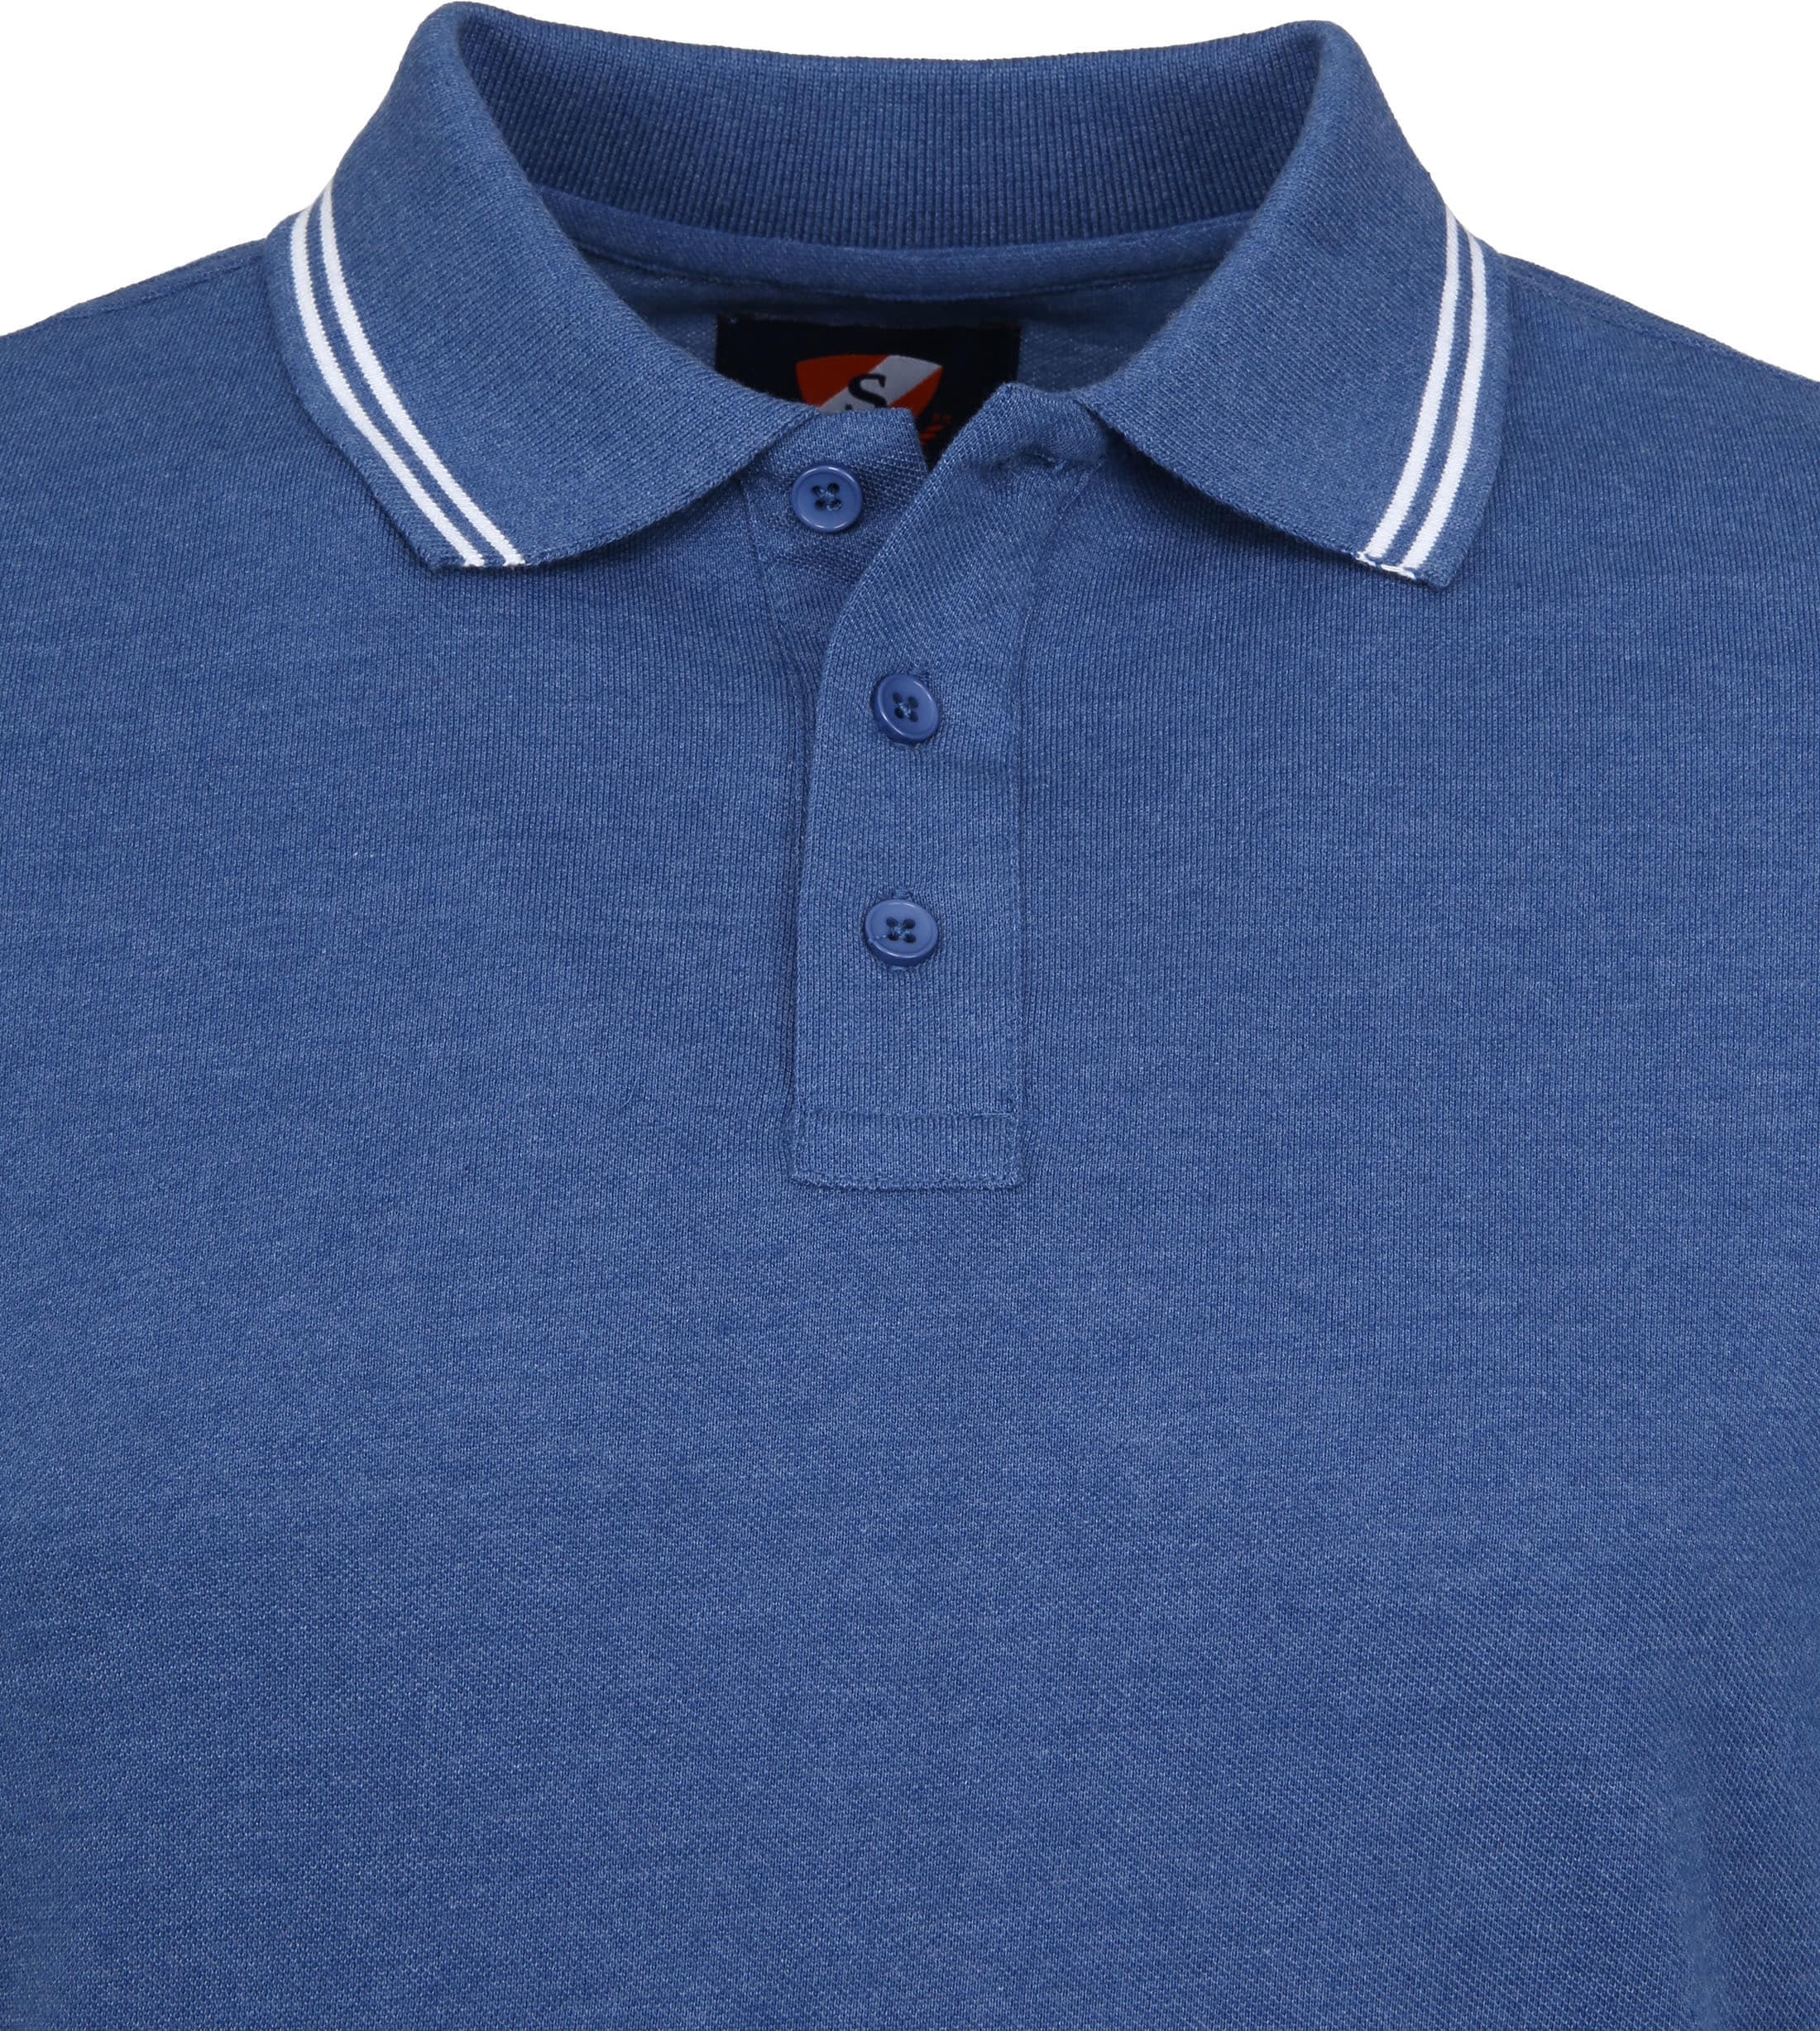 Suitable Chipp Poloshirt Blue foto 1